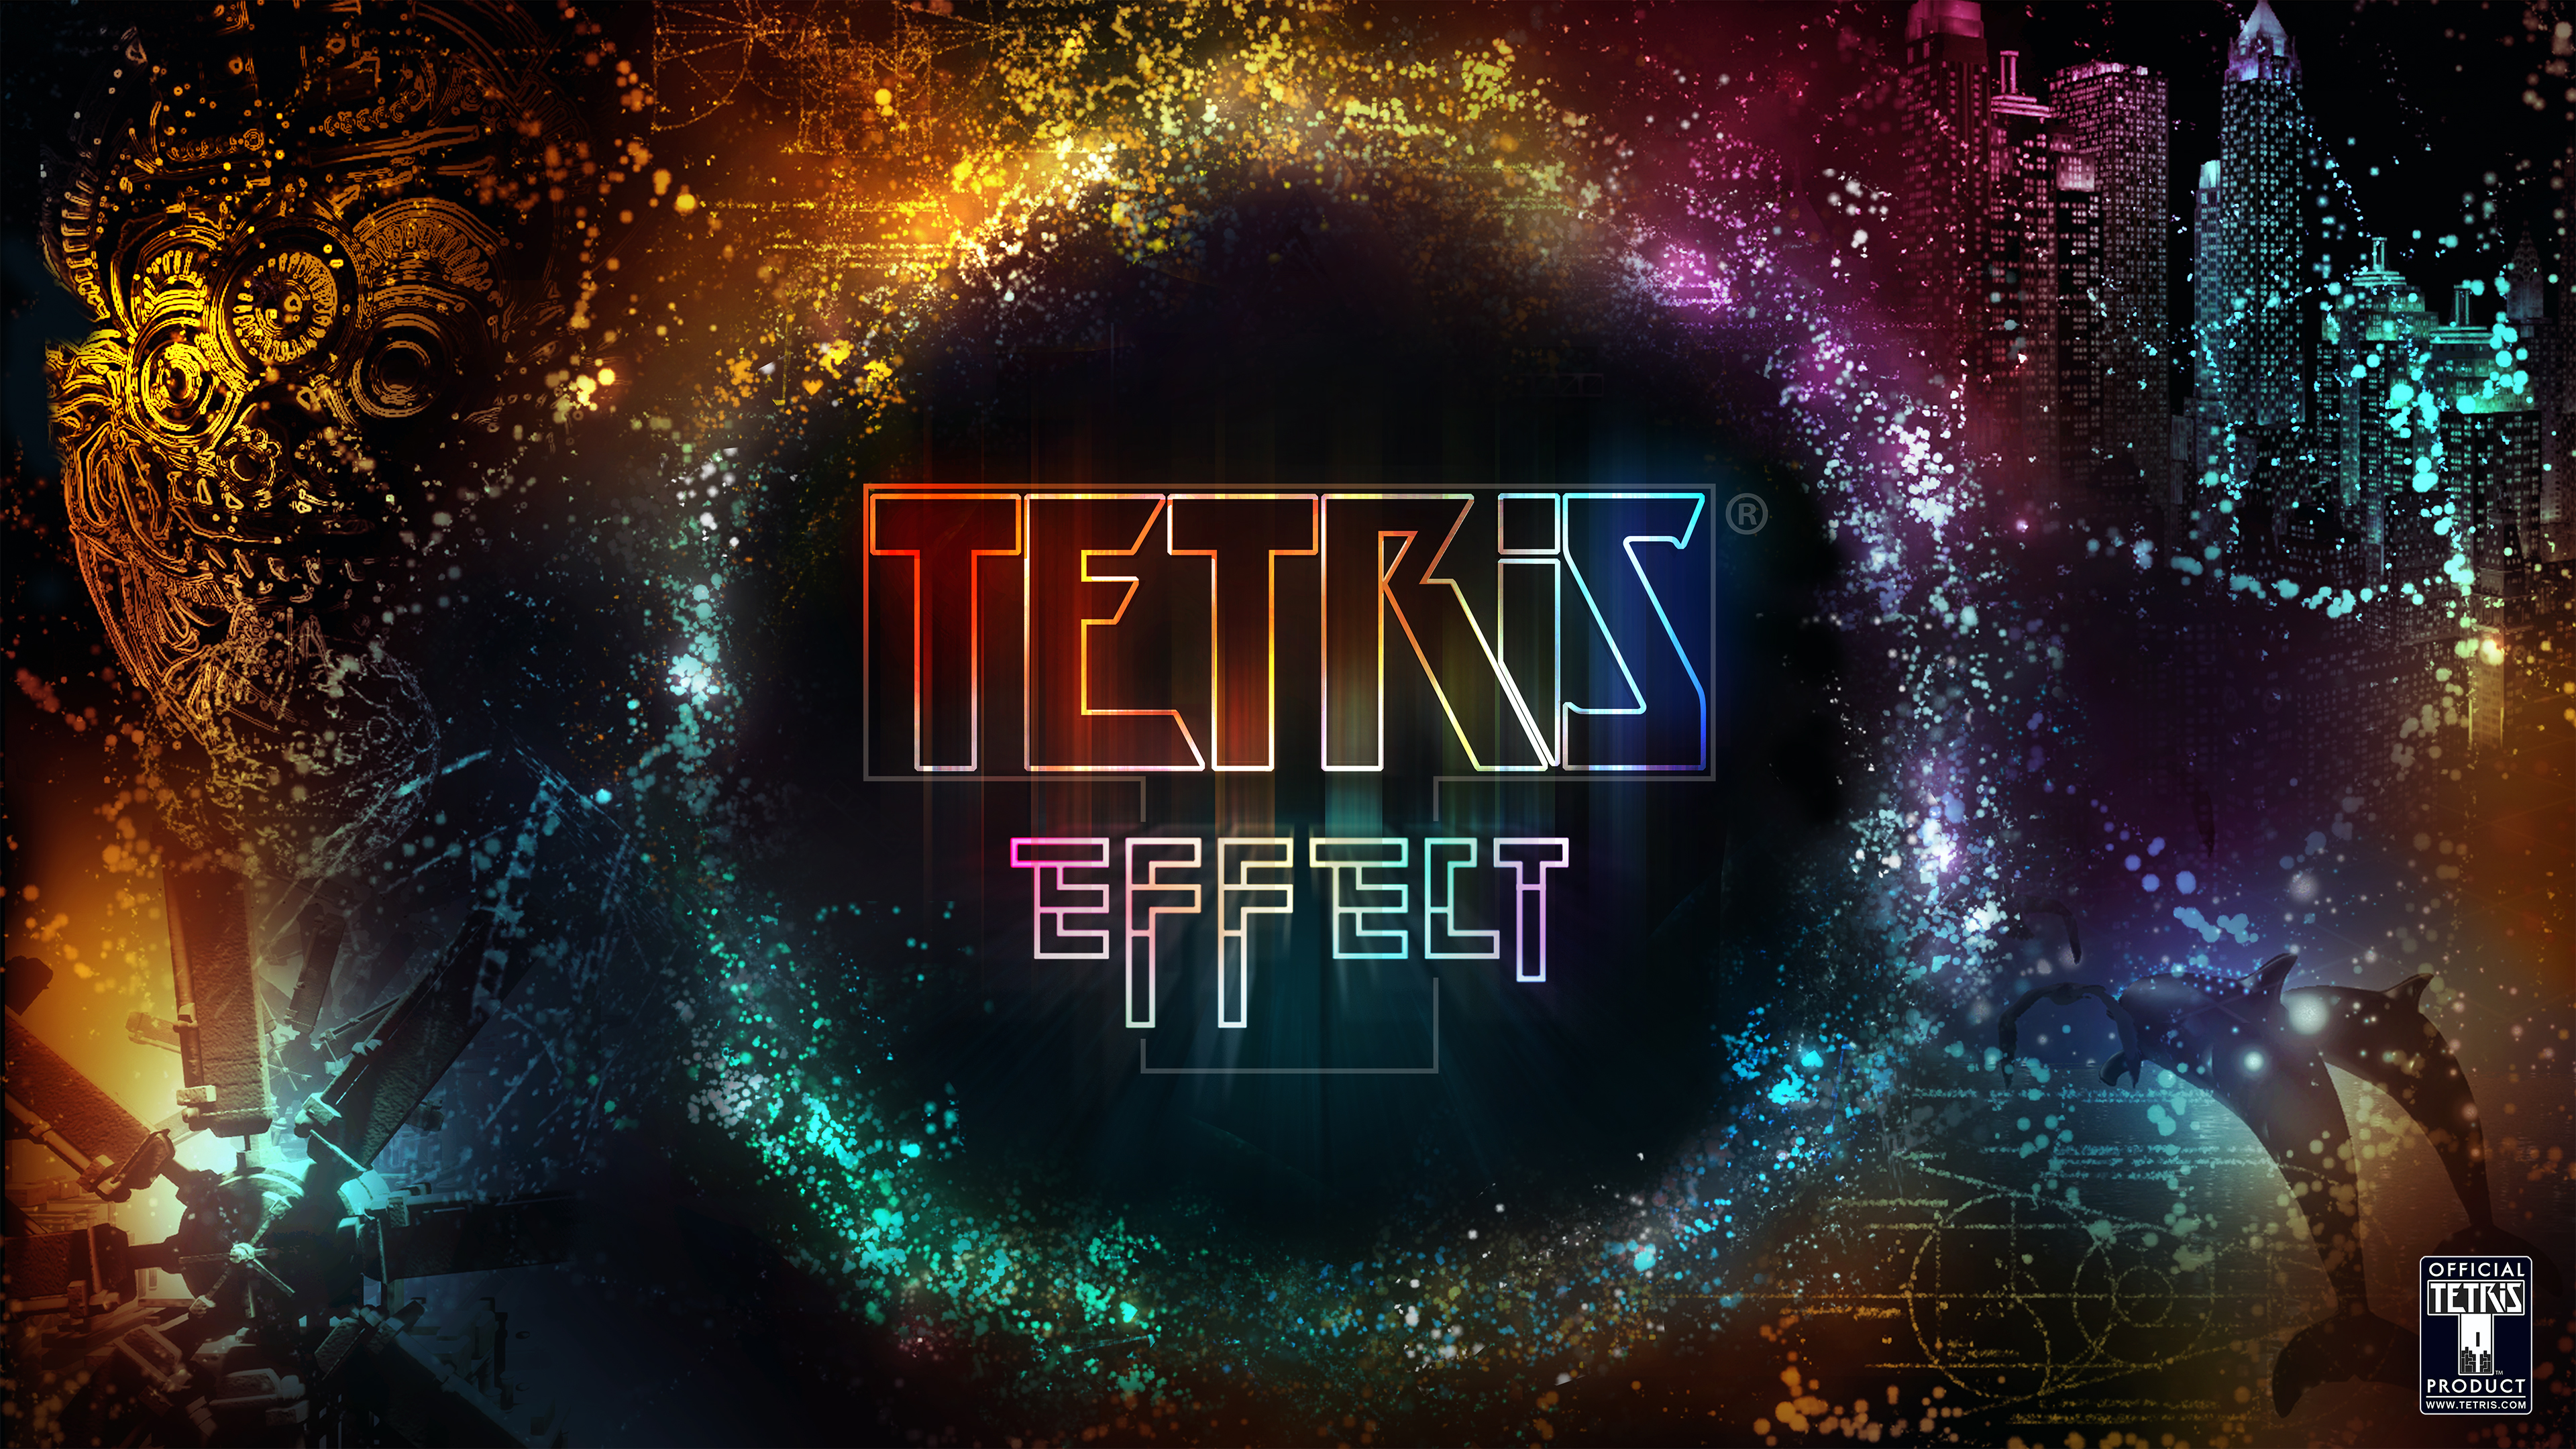 The logo for tetris effect with various particle effects around it.